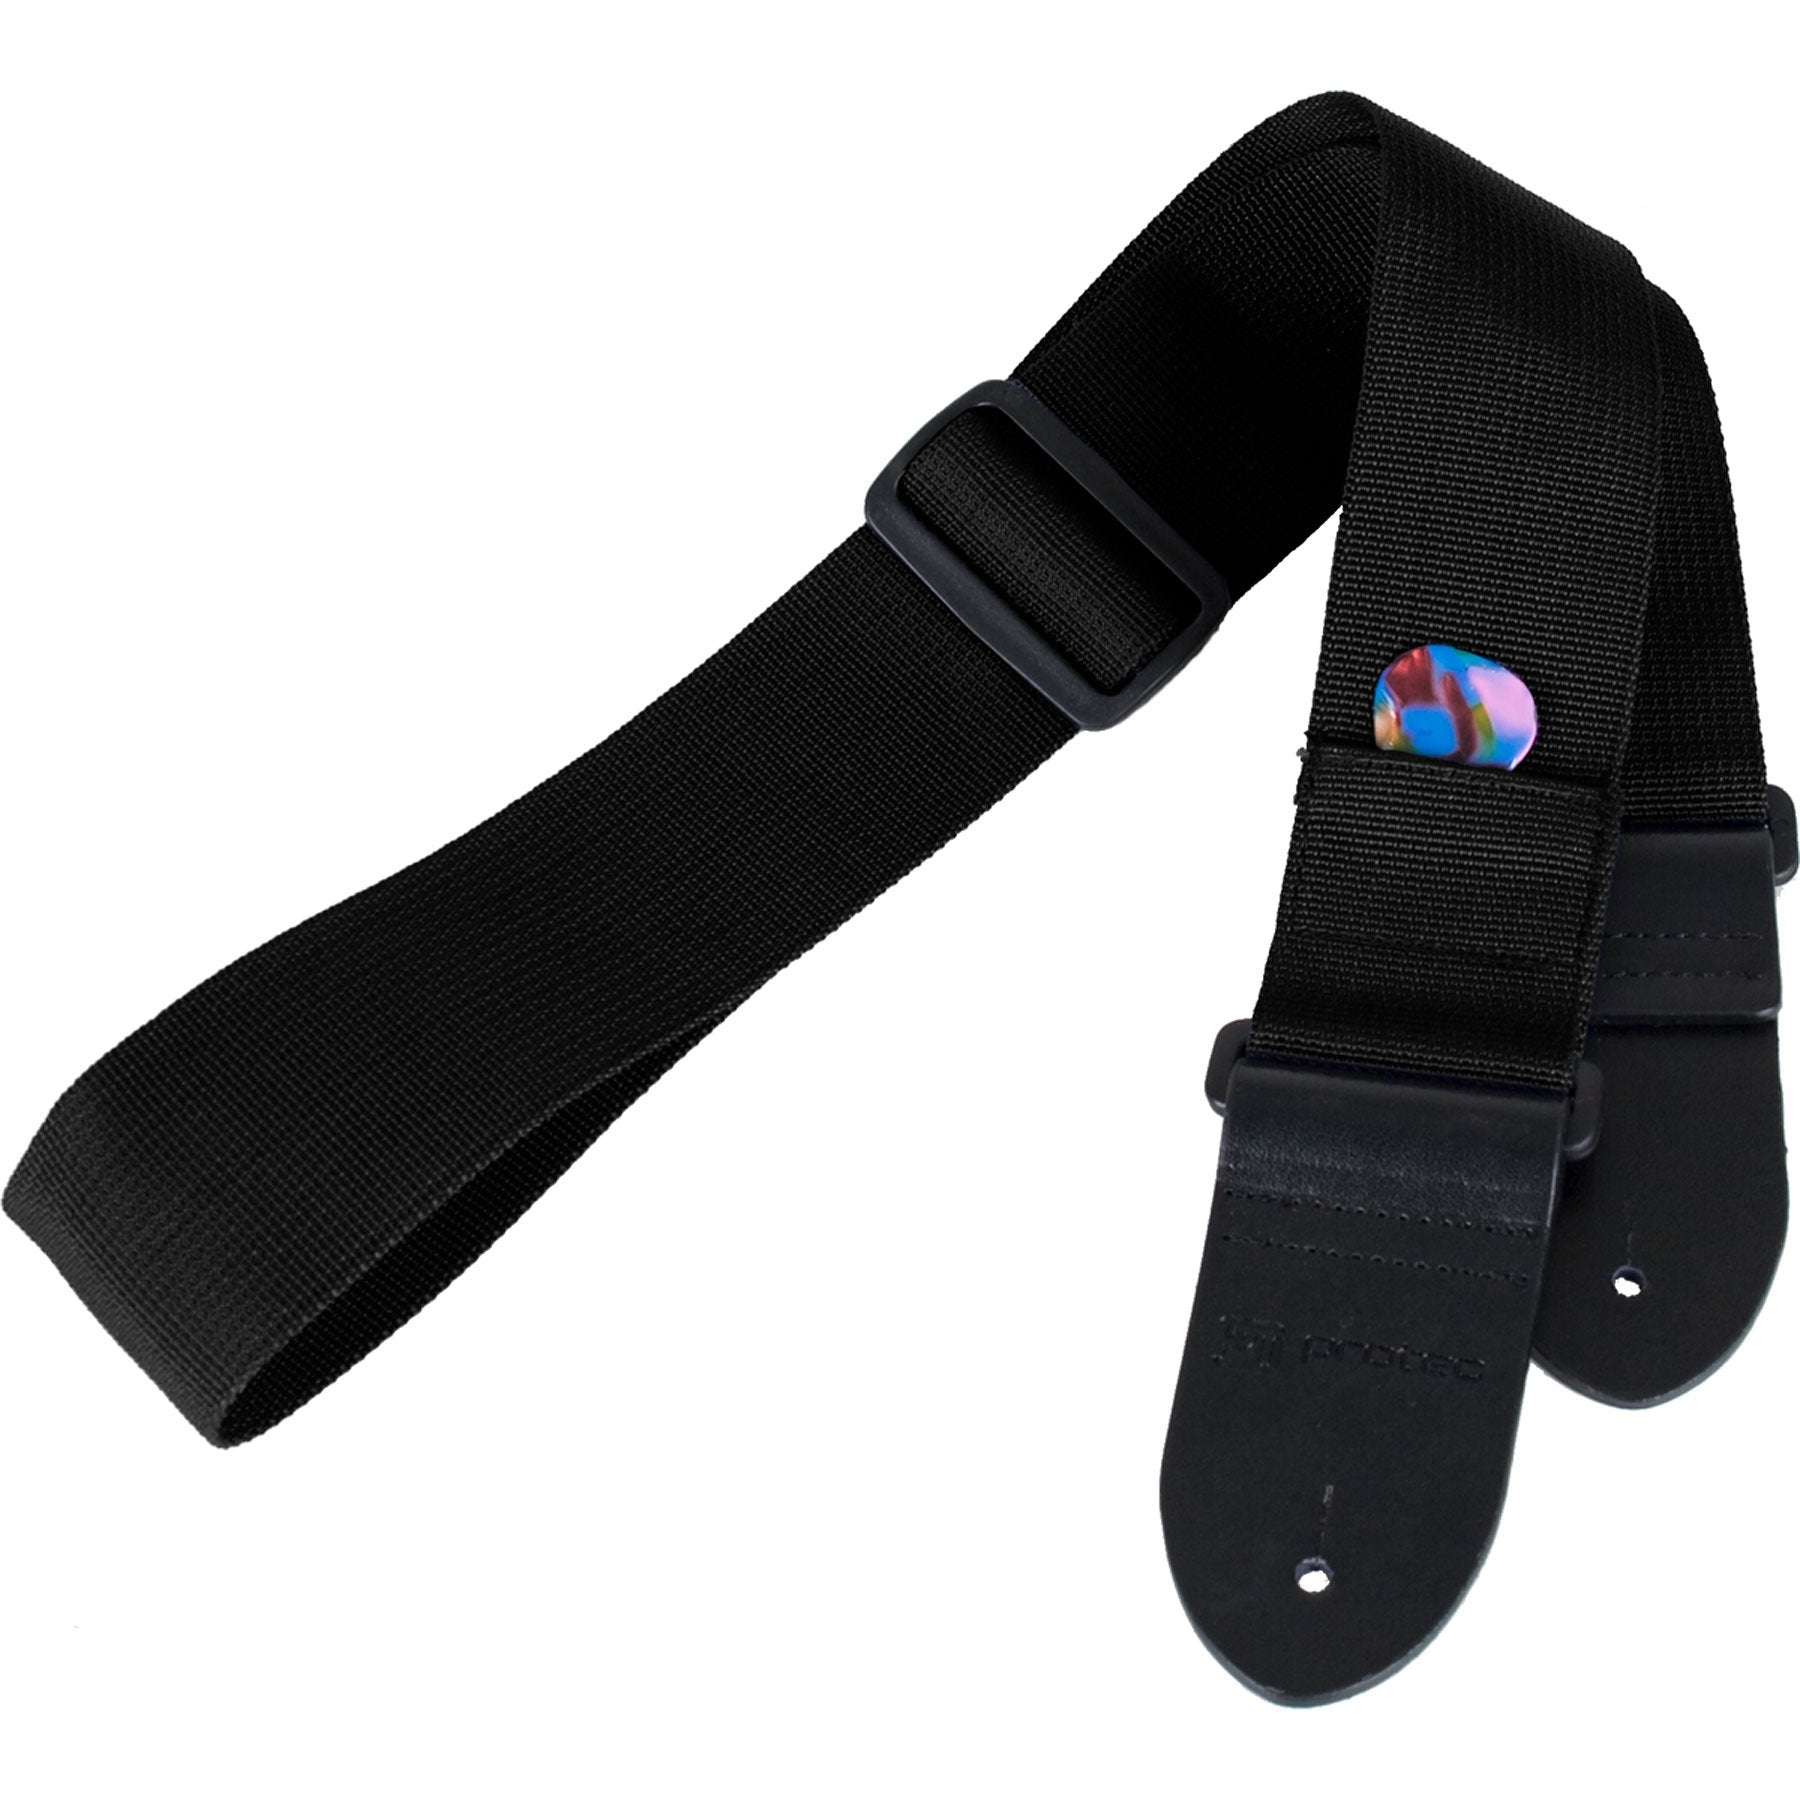 Protec - Nylon Guitar Strap with Leather Ends & Pick Pocket-Accessories-Protec-Black-Music Elements